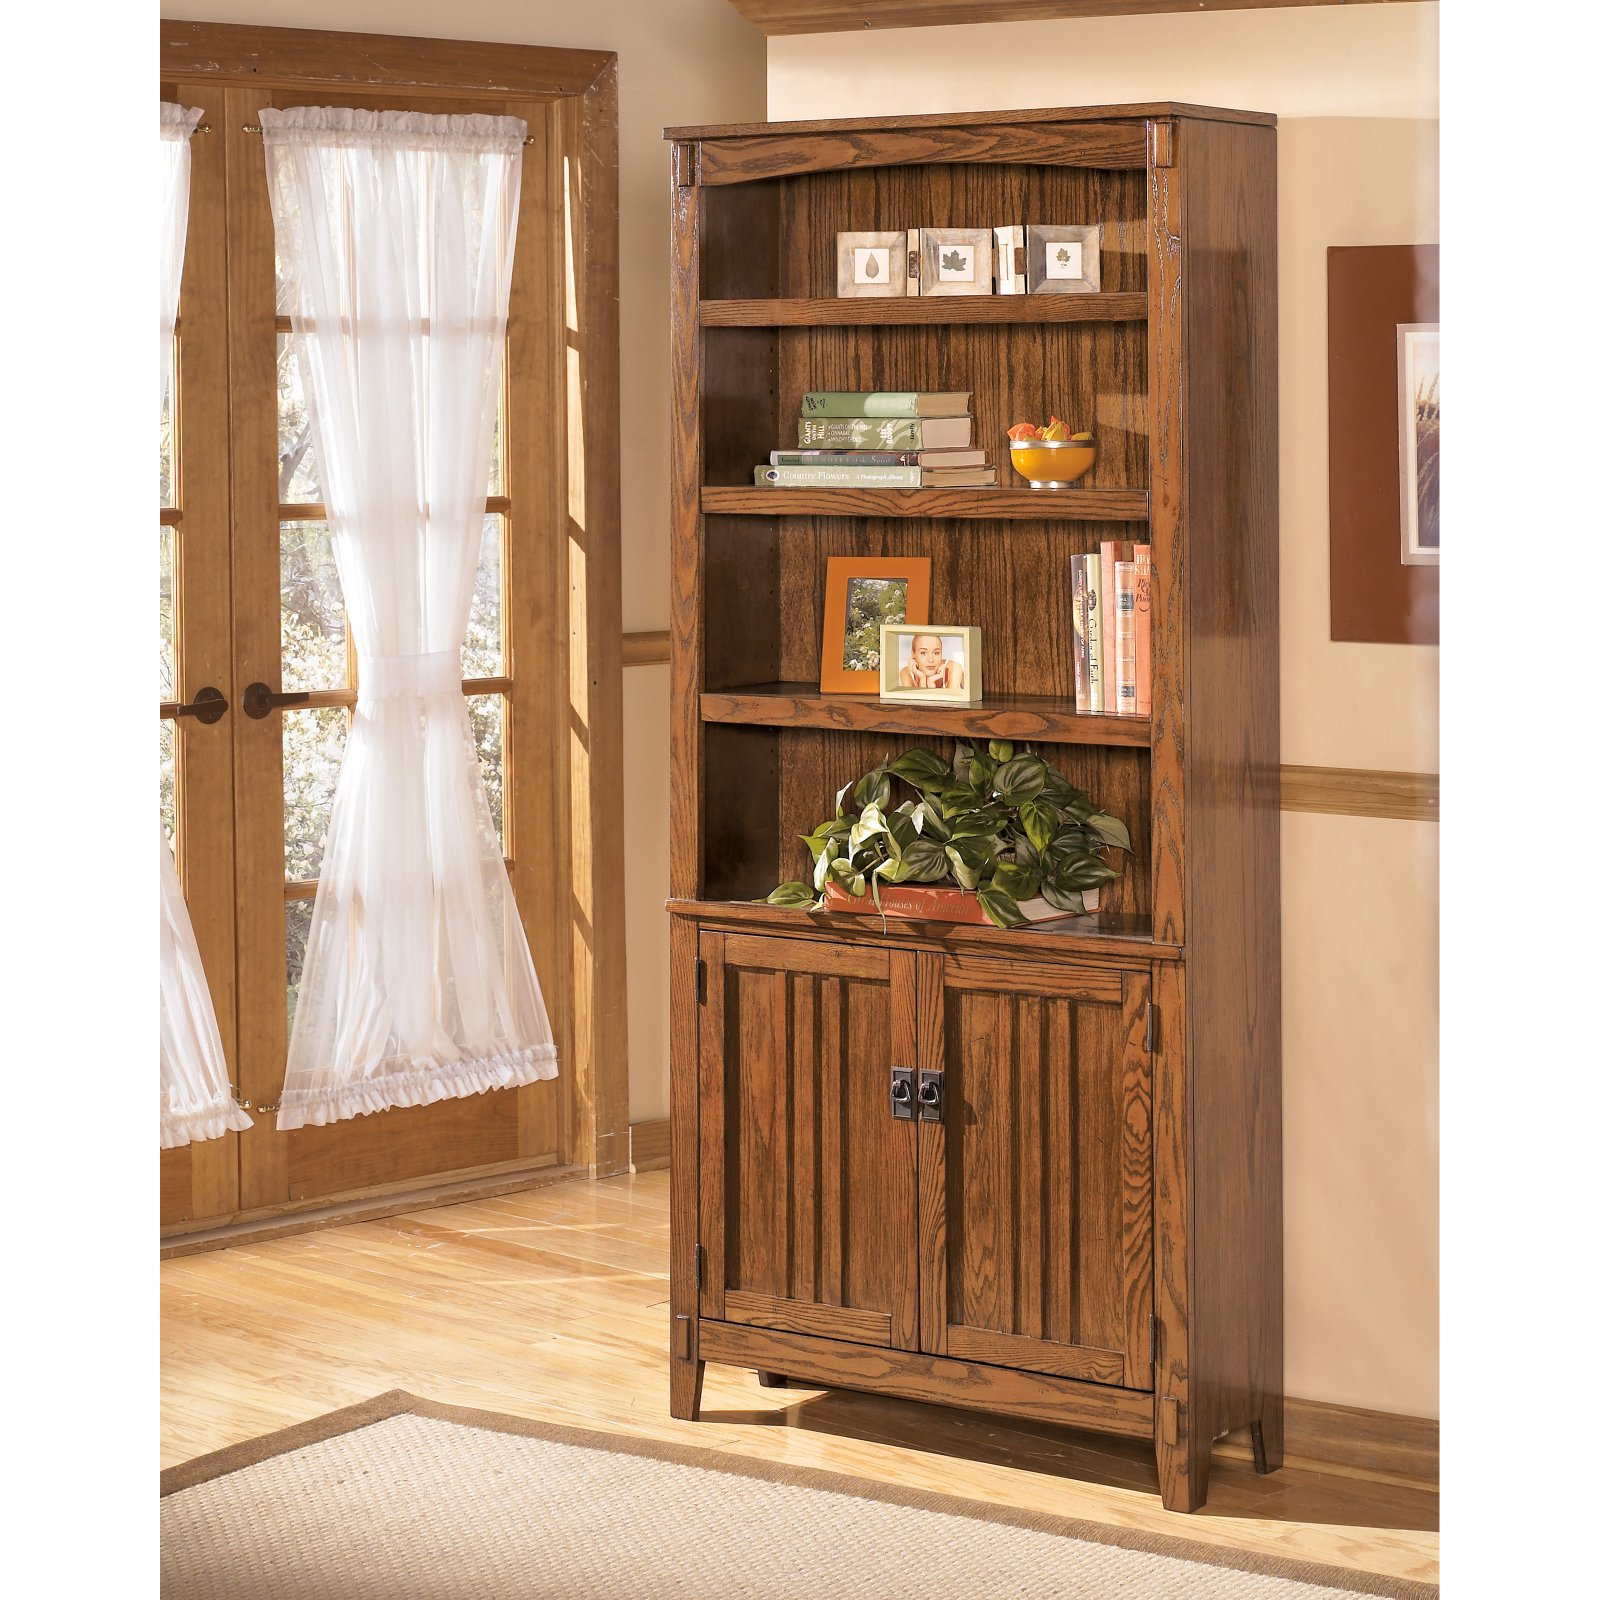 Signature Design by Ashley Cross Island 75 in. Bookcase with Doors